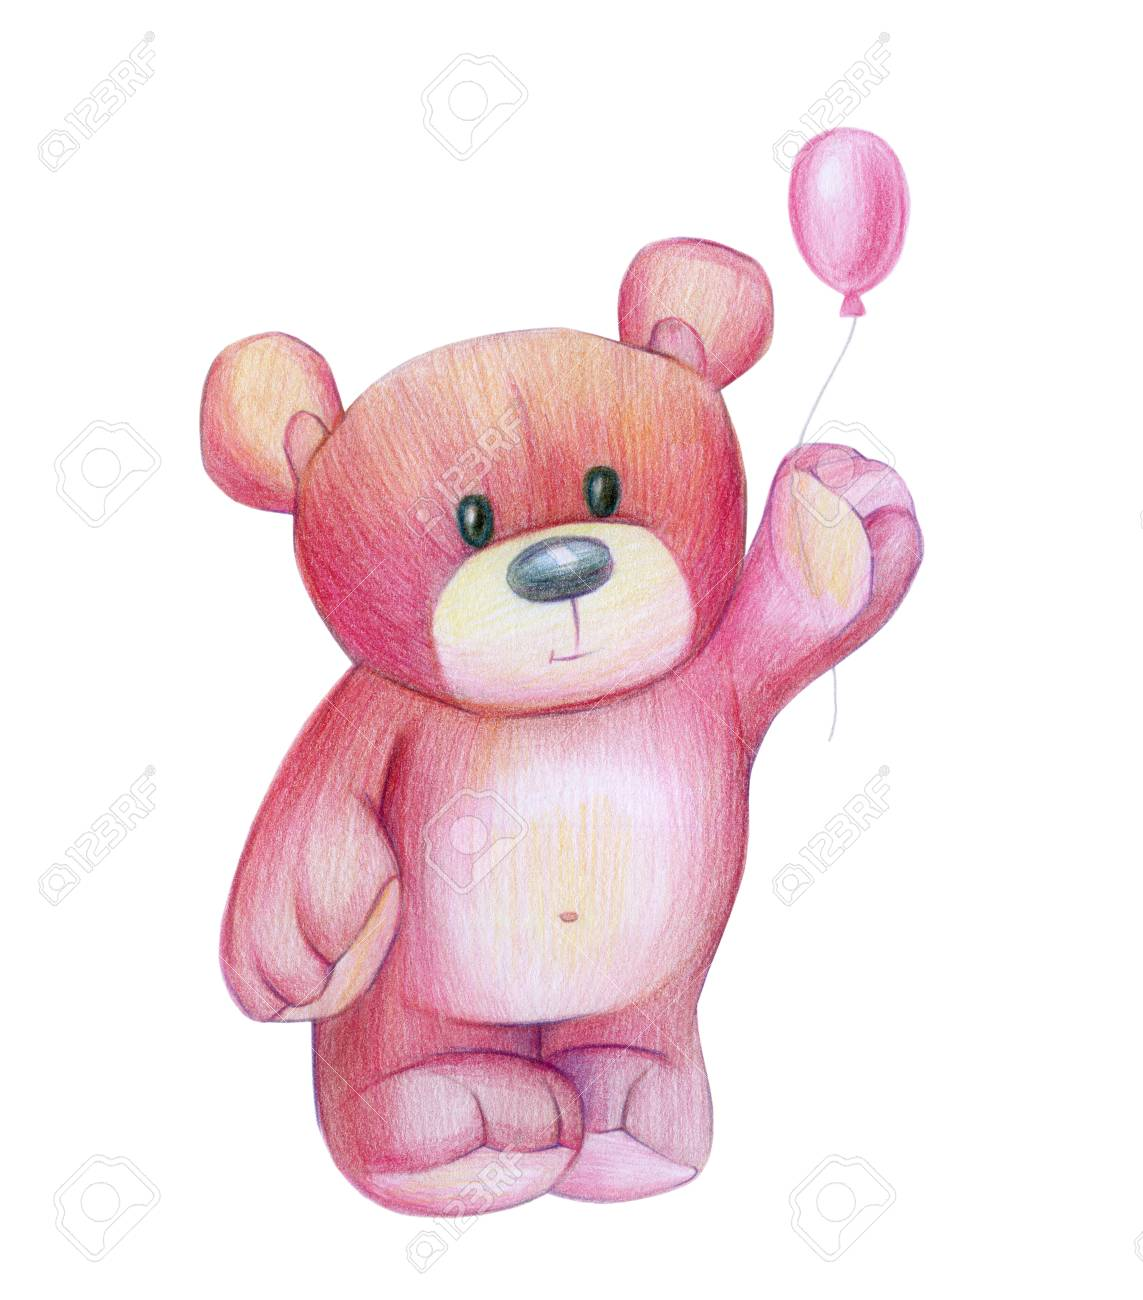 Cute Baby Bear Holding Balloon Isolated Hand Drawing